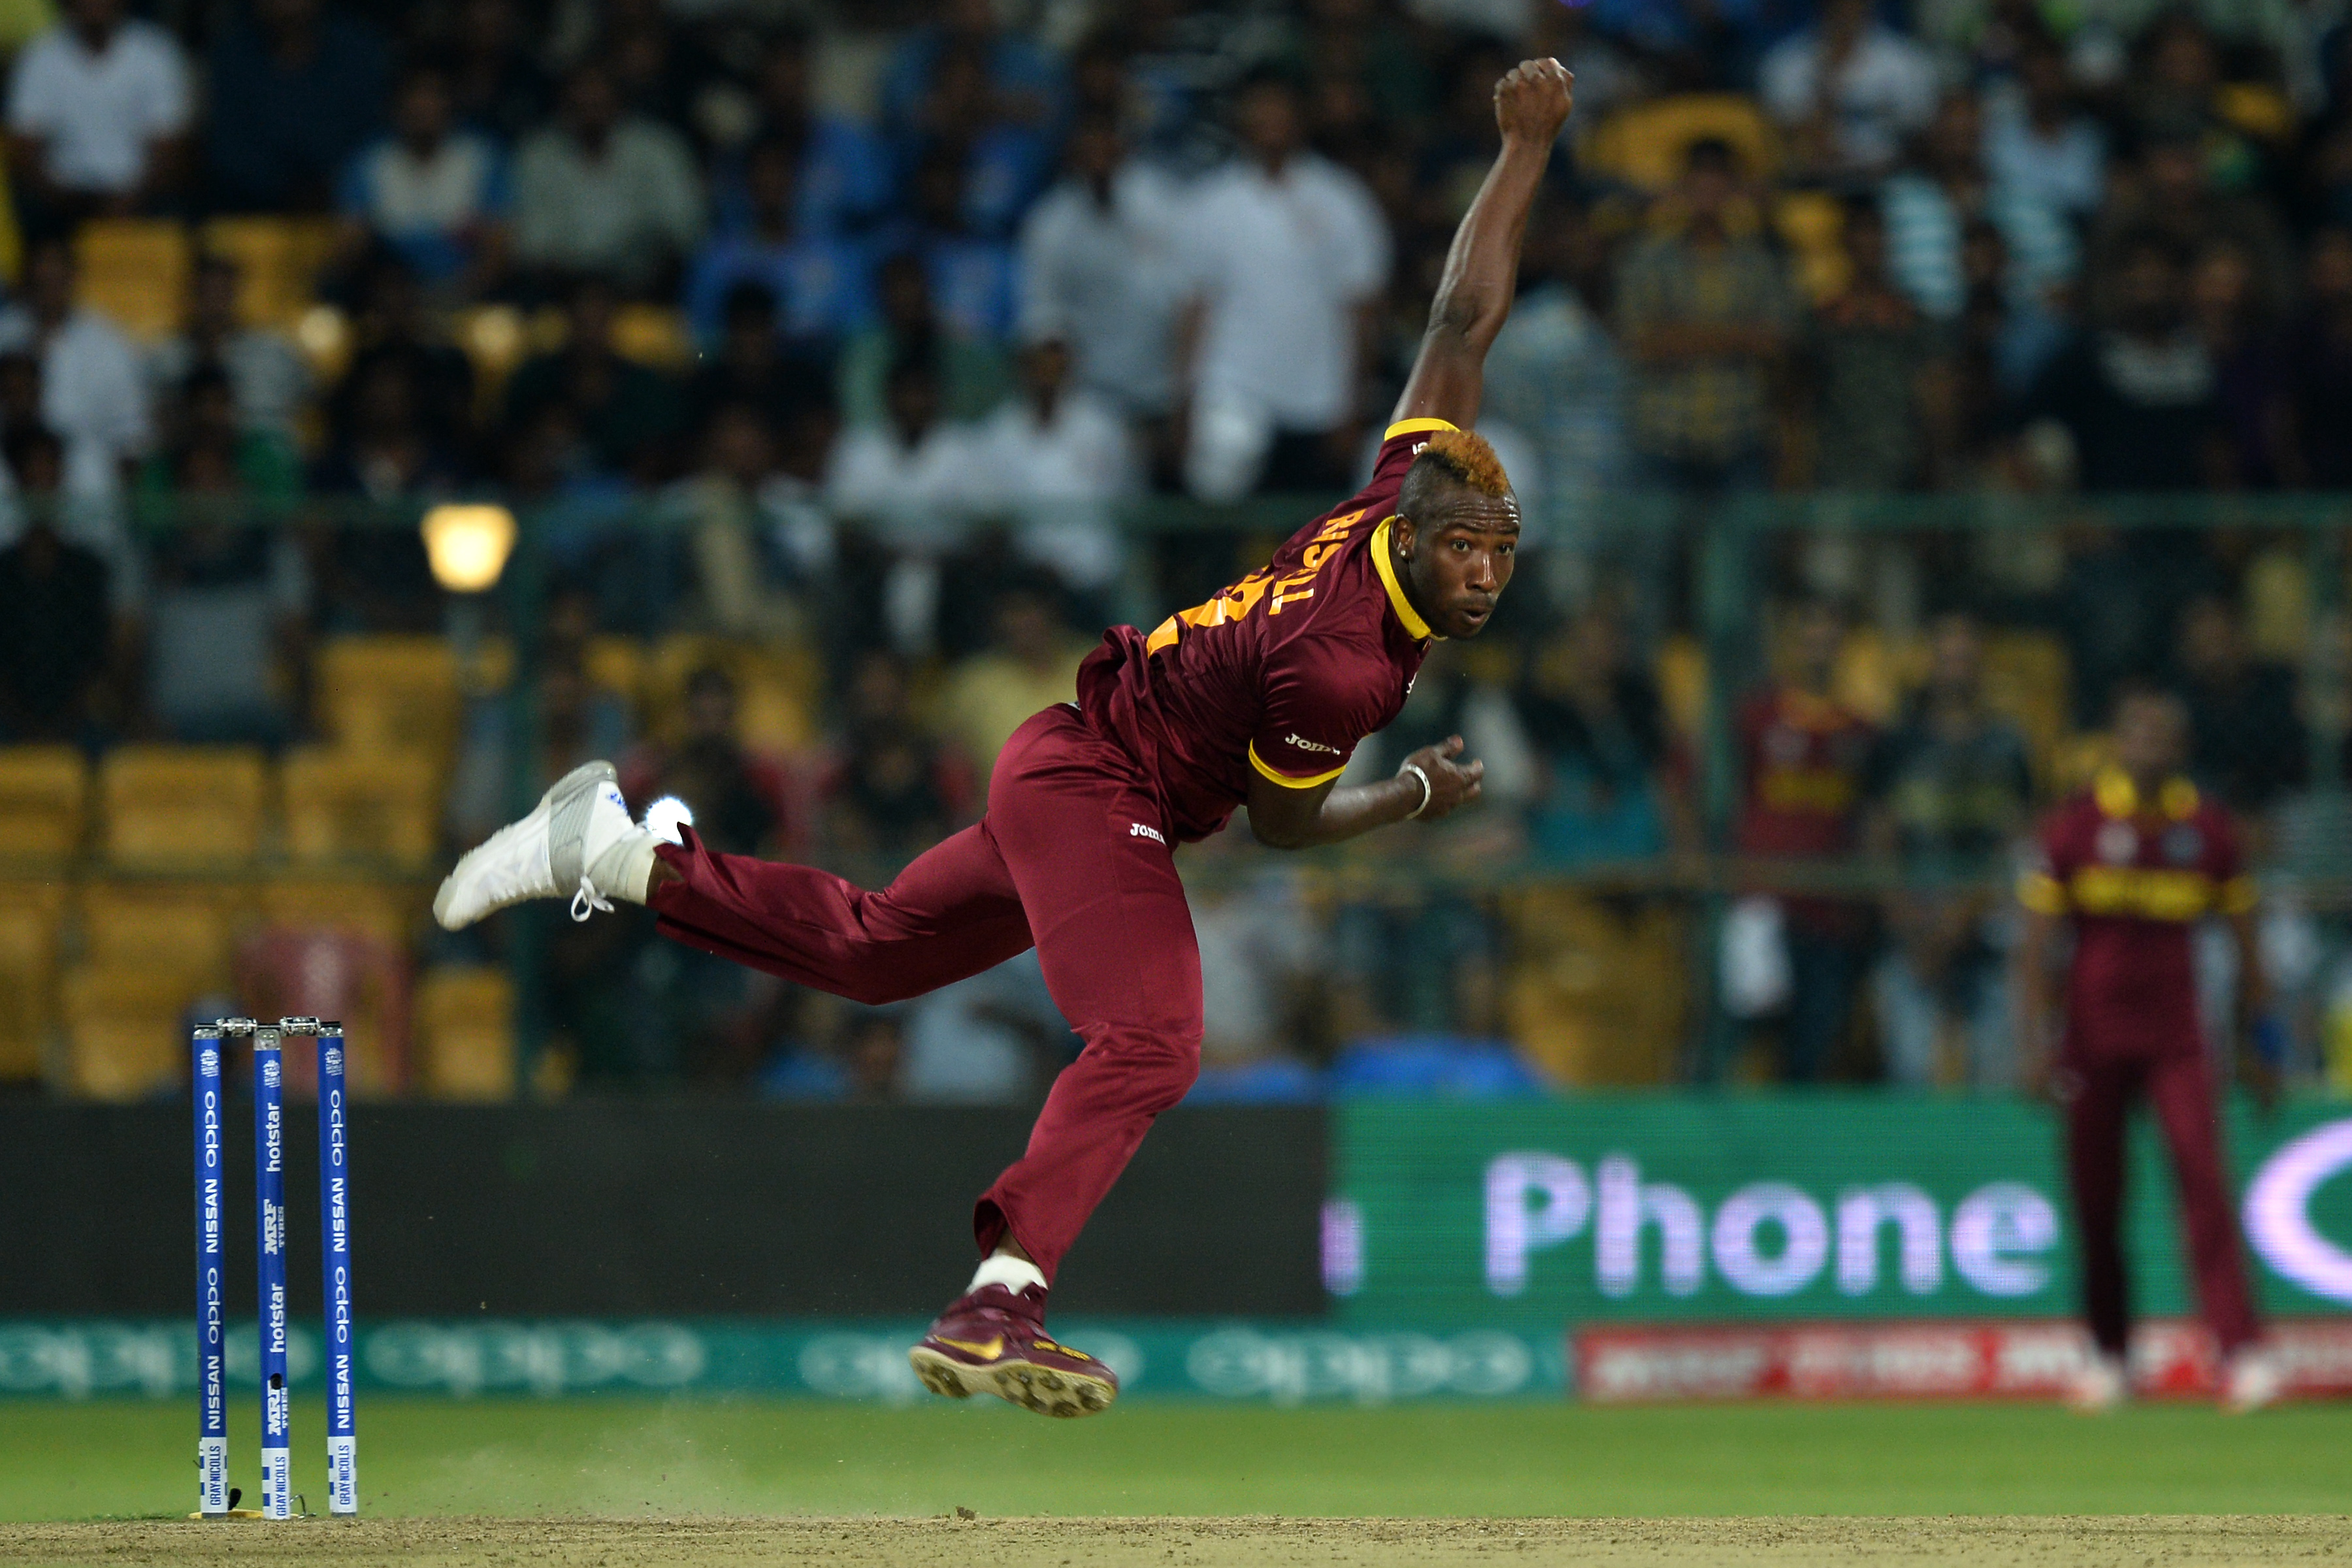 Pakistan vs. West Indies cricket, live stream cricket, West Indies tour, Andre Russell doping